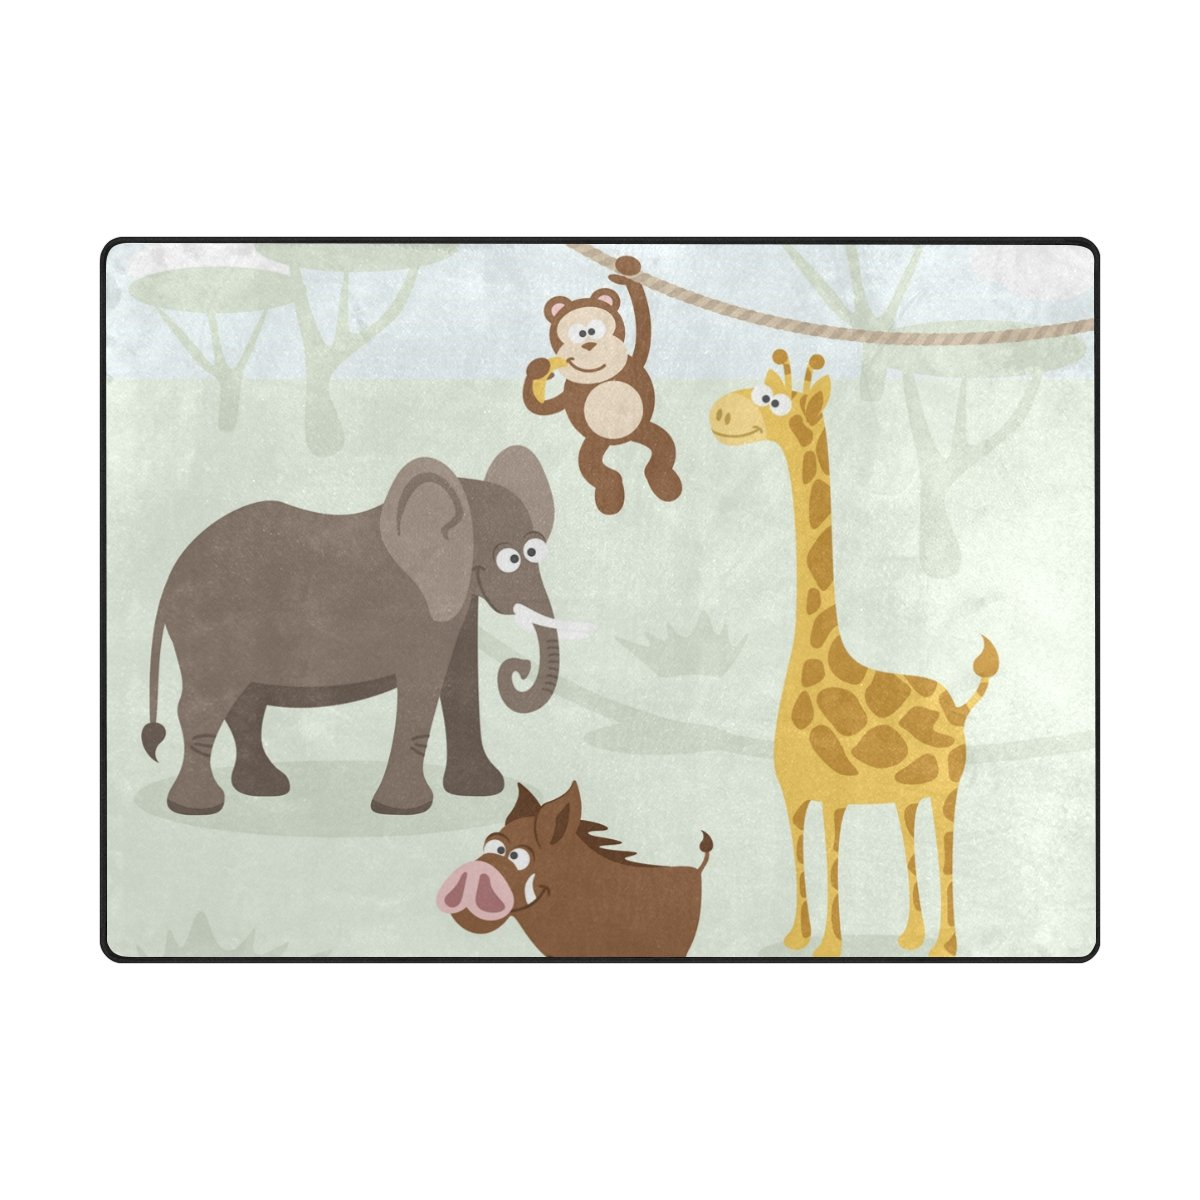 Vantaso Soft Foam Area Rugs Forest Animals Elephant Monkey Non Slip Play Mats for Kids Boys Girls Playing Room Living Room 80x58 inch by Vantaso (Image #1)